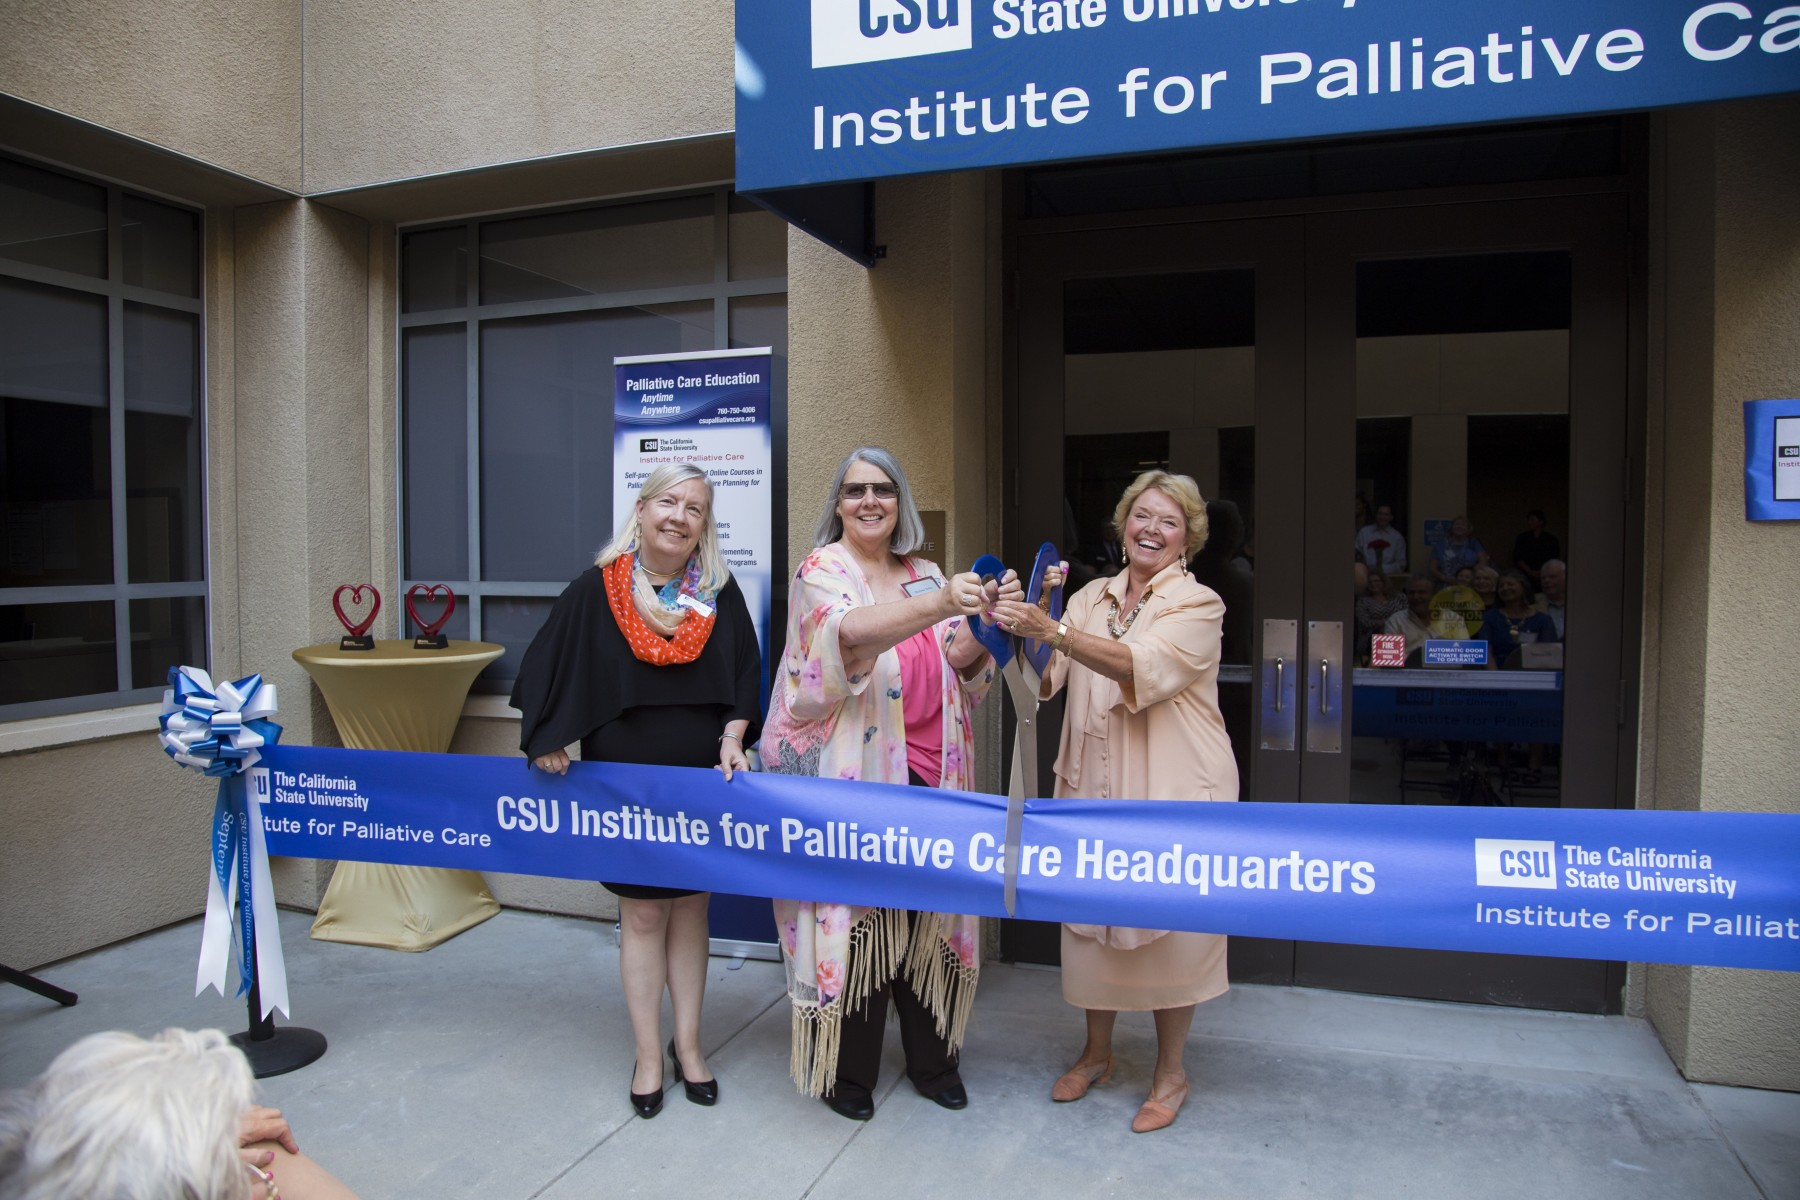 CSU Institute for Palliative Care